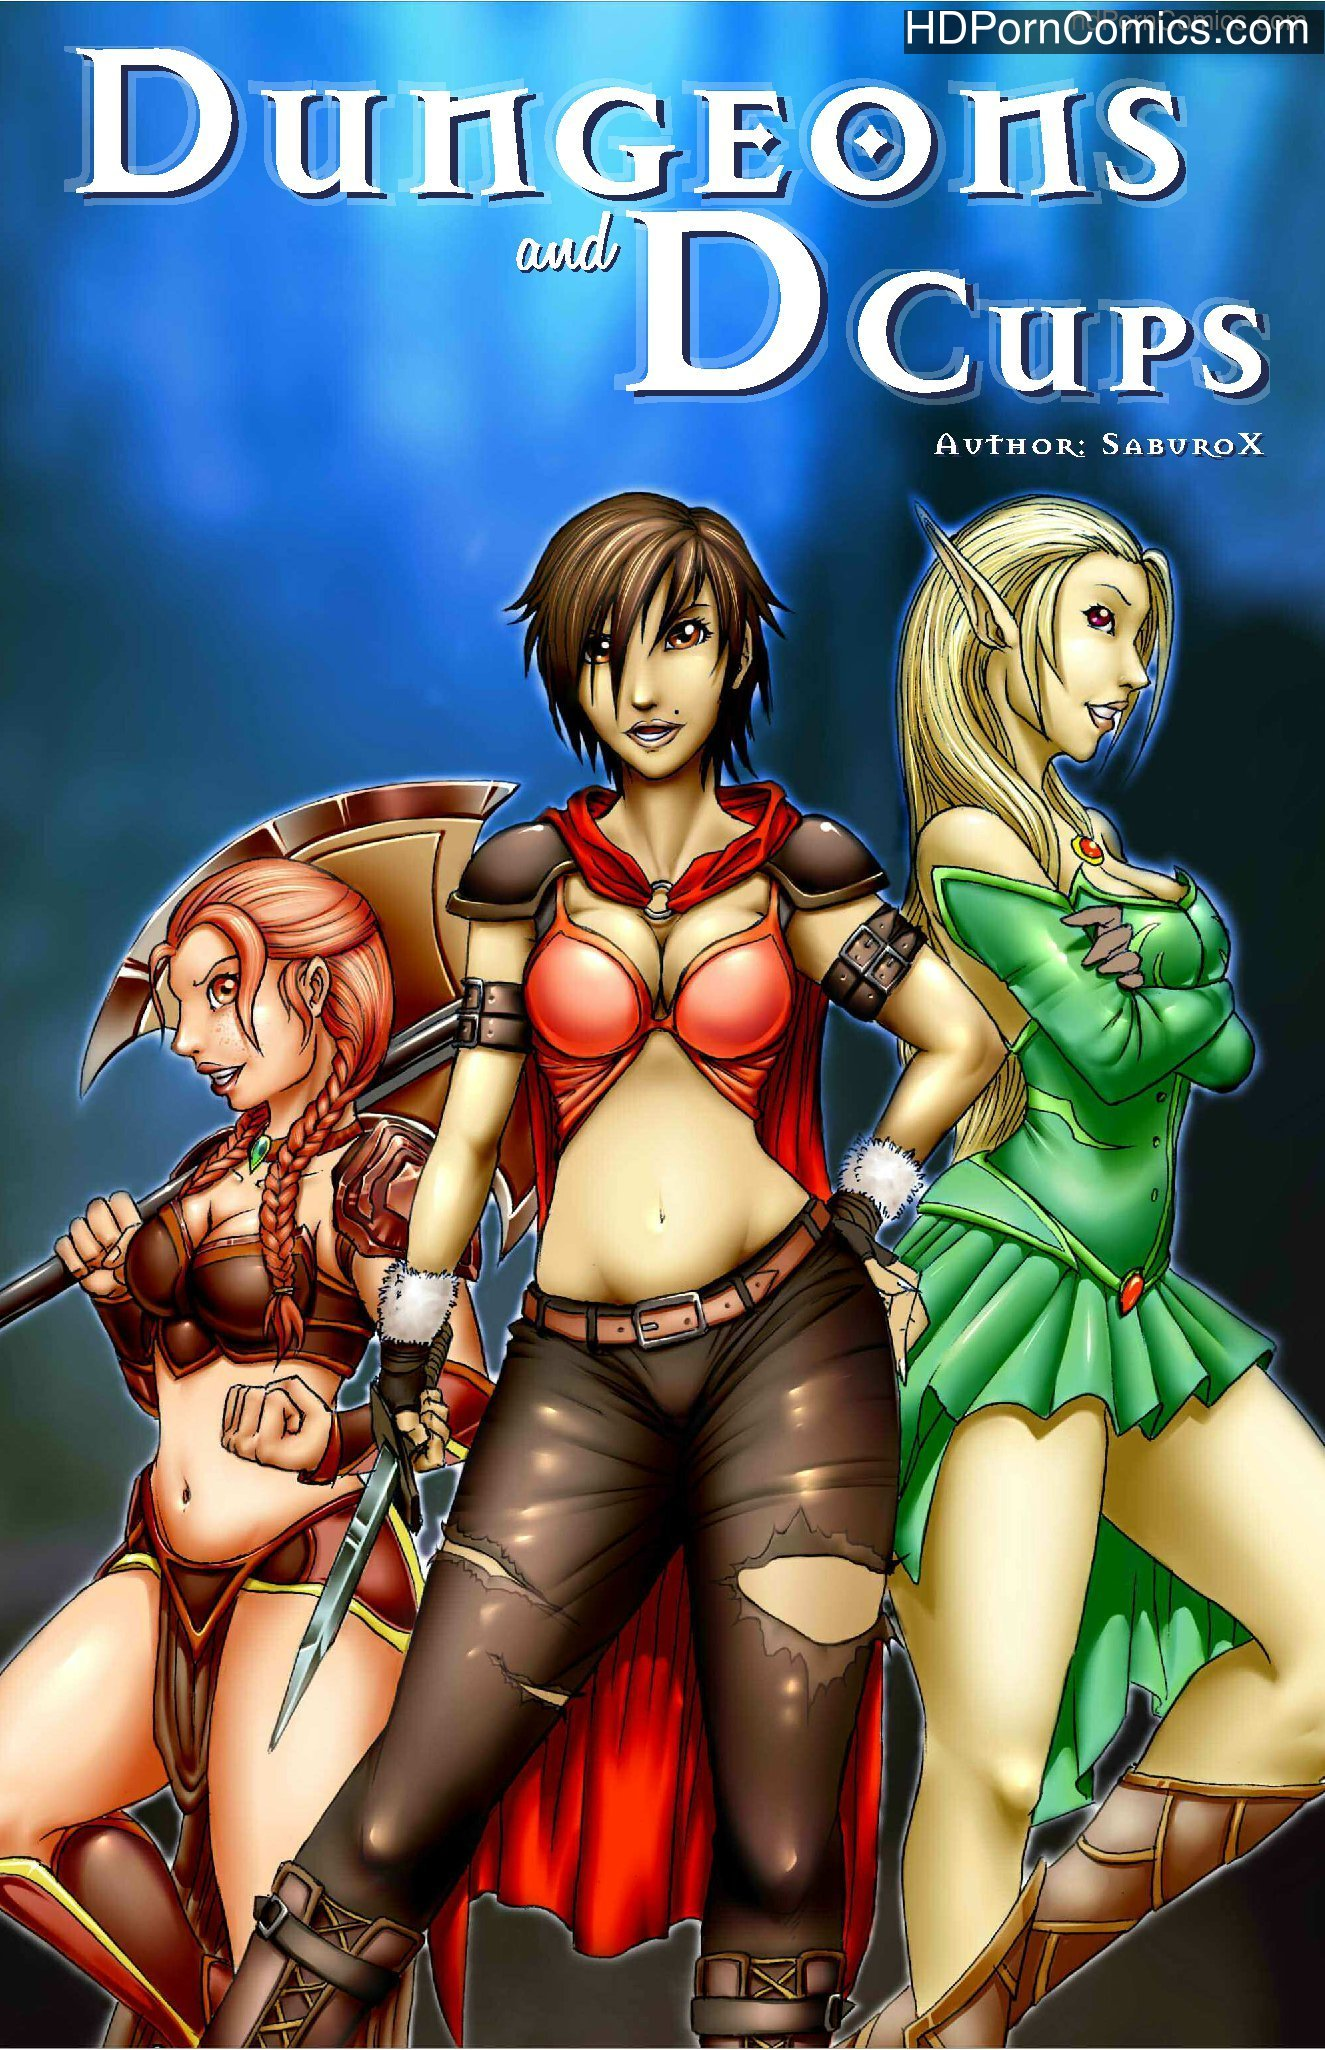 Xxx Comics-Dungeons and D Cups free Porn Comic